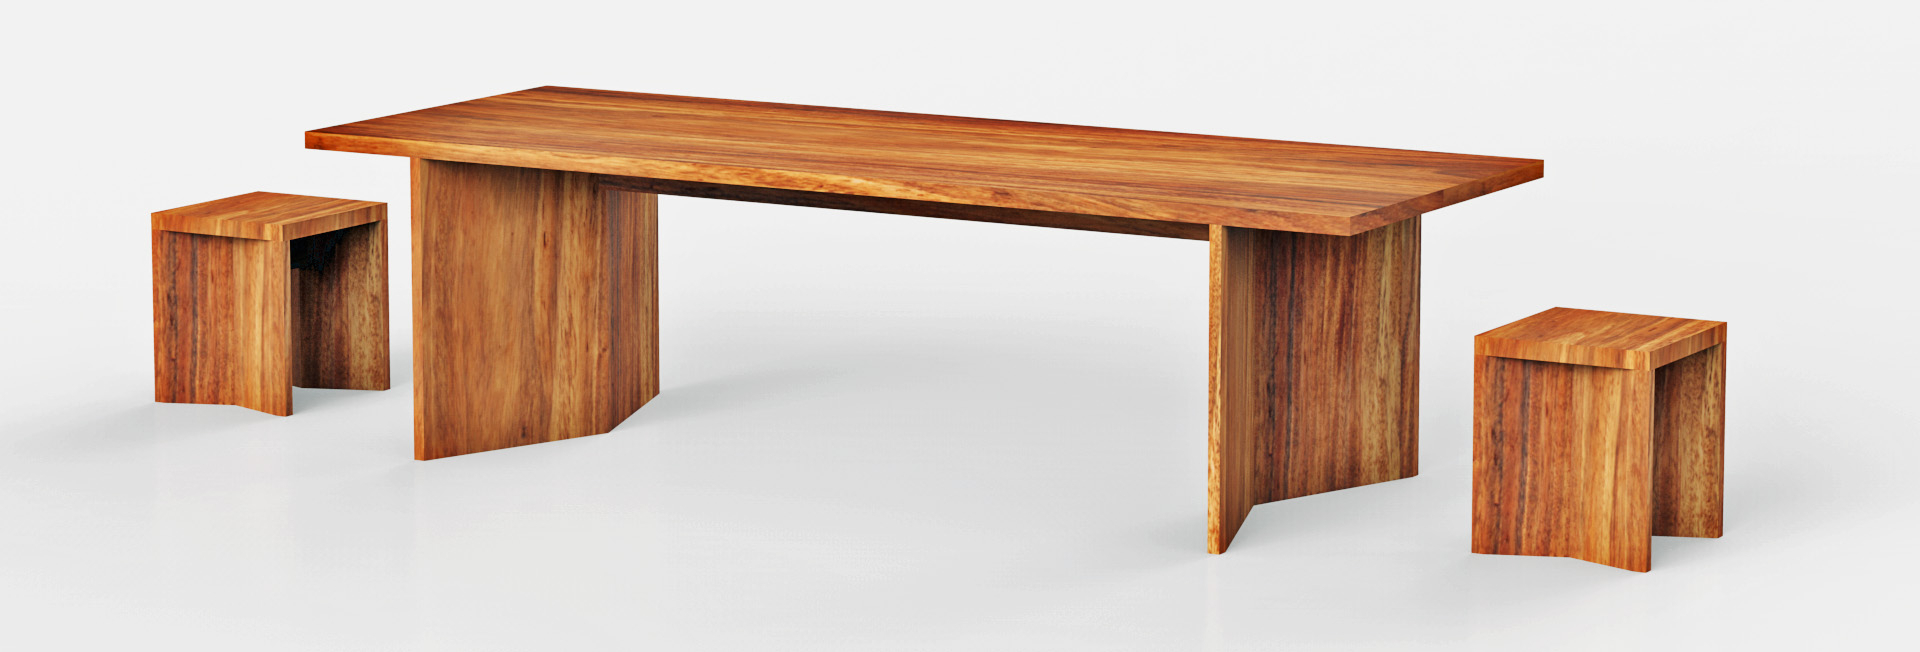 Popular How To Calculate The Best Dining Table Size For Your Room Within 6 Seater Retangular Wood Contemporary Dining Tables (View 23 of 25)